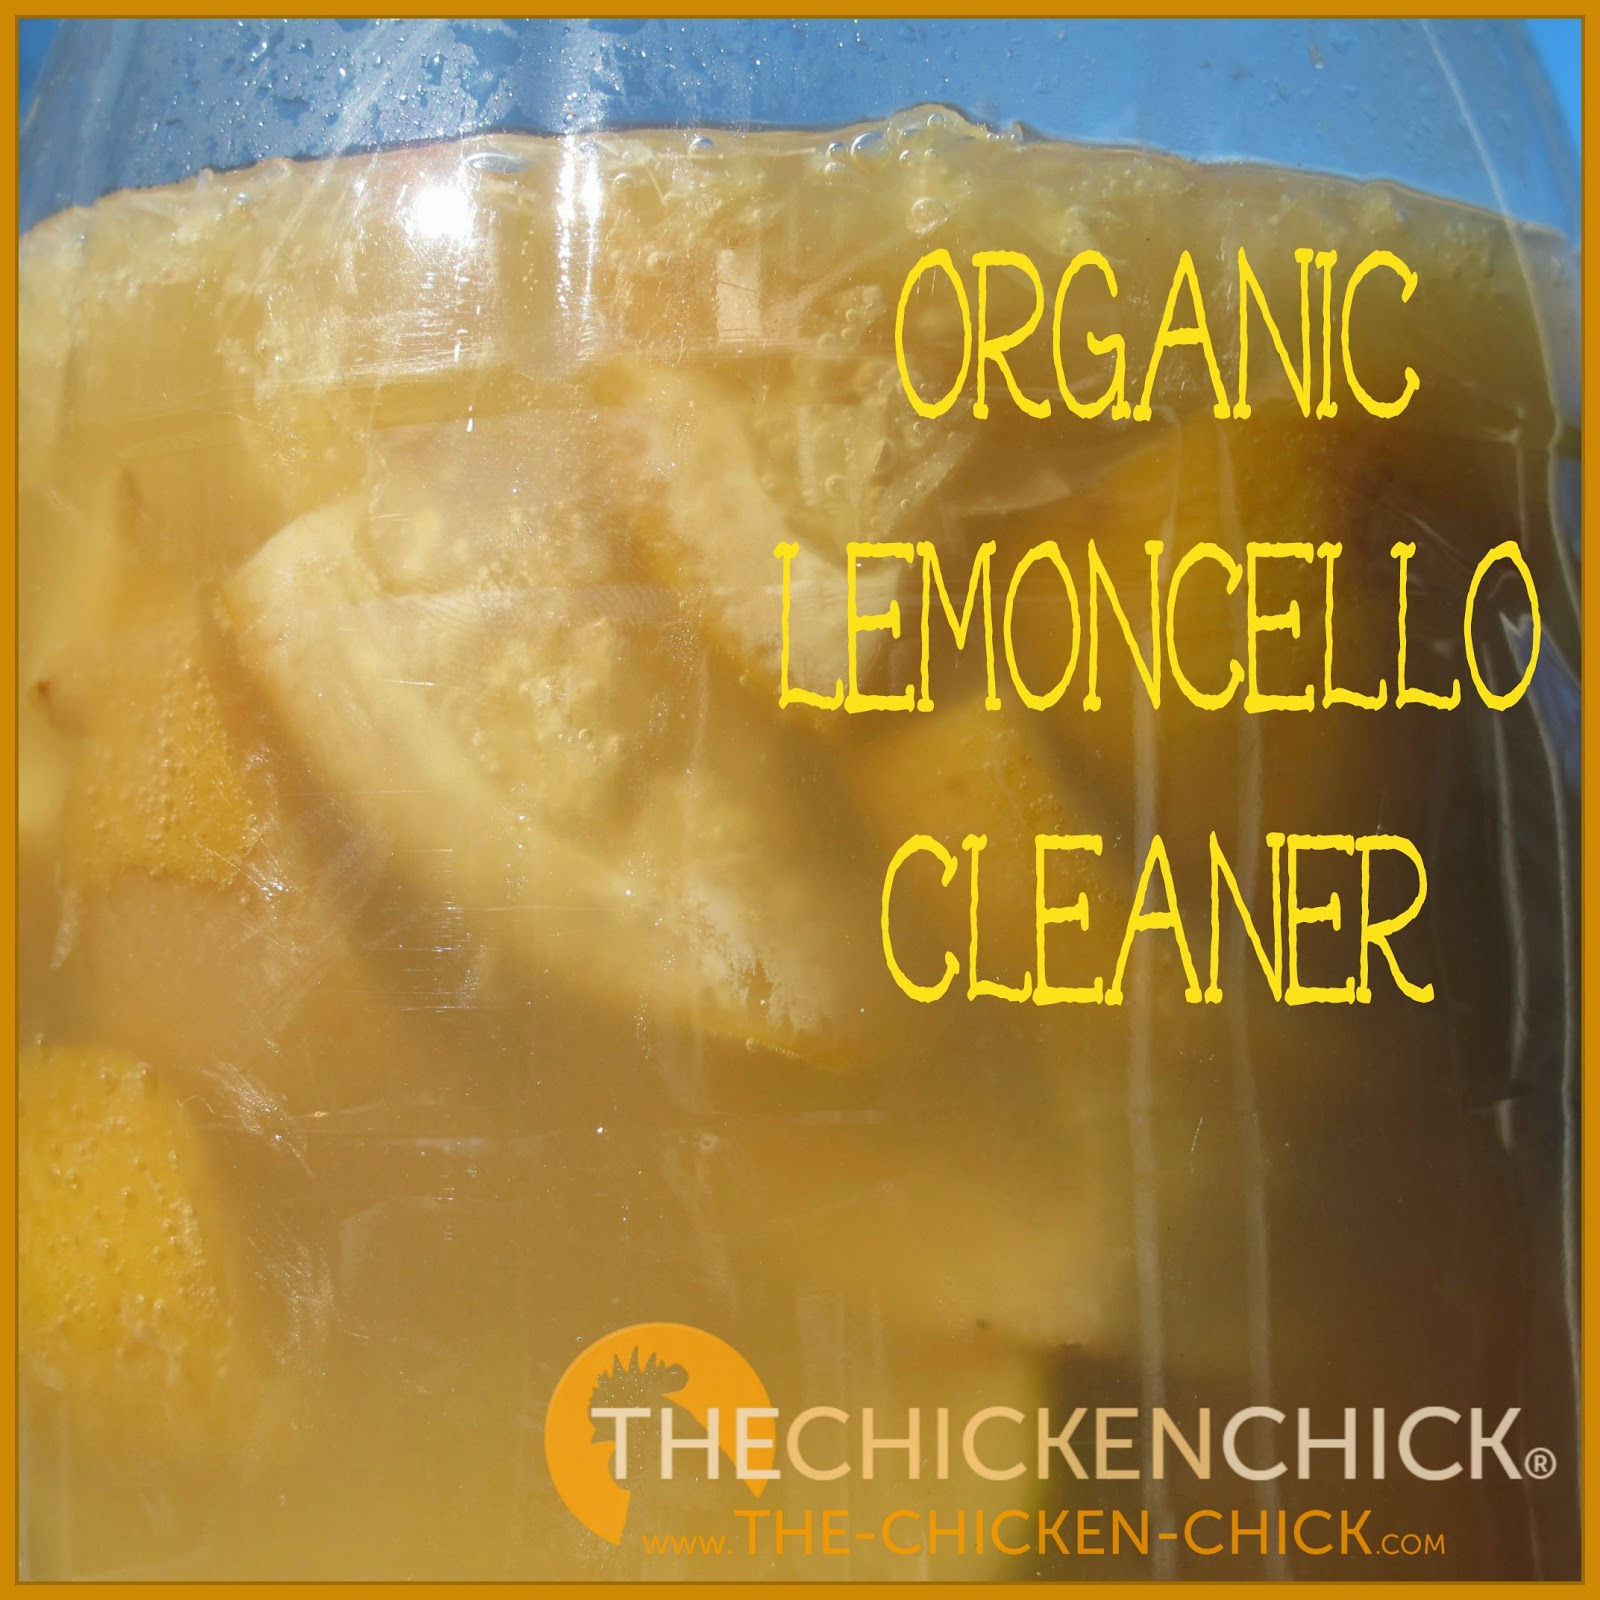 The limonene in the citrus peels is a known insecticide and is used in many commercial cleaning and insecticide products. Herbs can be added to the cleaner as it brews, but won't make it more effective as a cleaner.